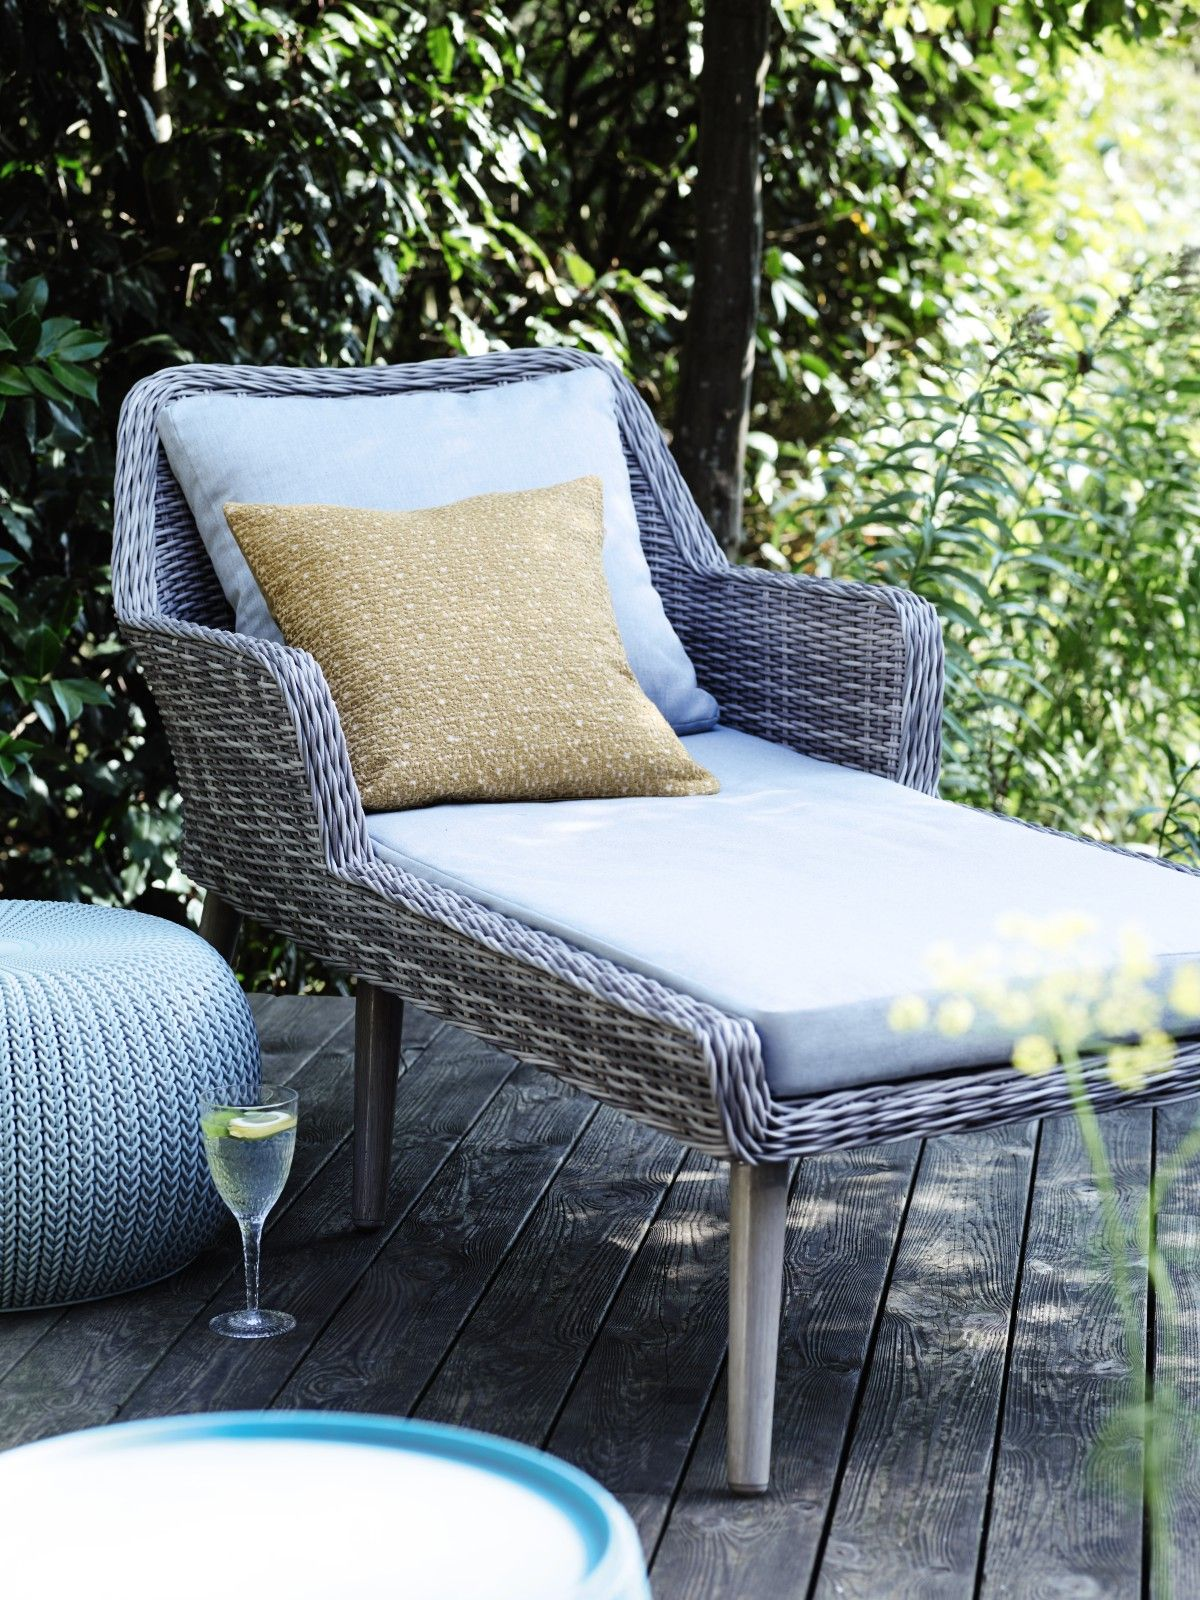 Perfect for whiling away warm afternoons this sunlounger is contemporary stylish and practical